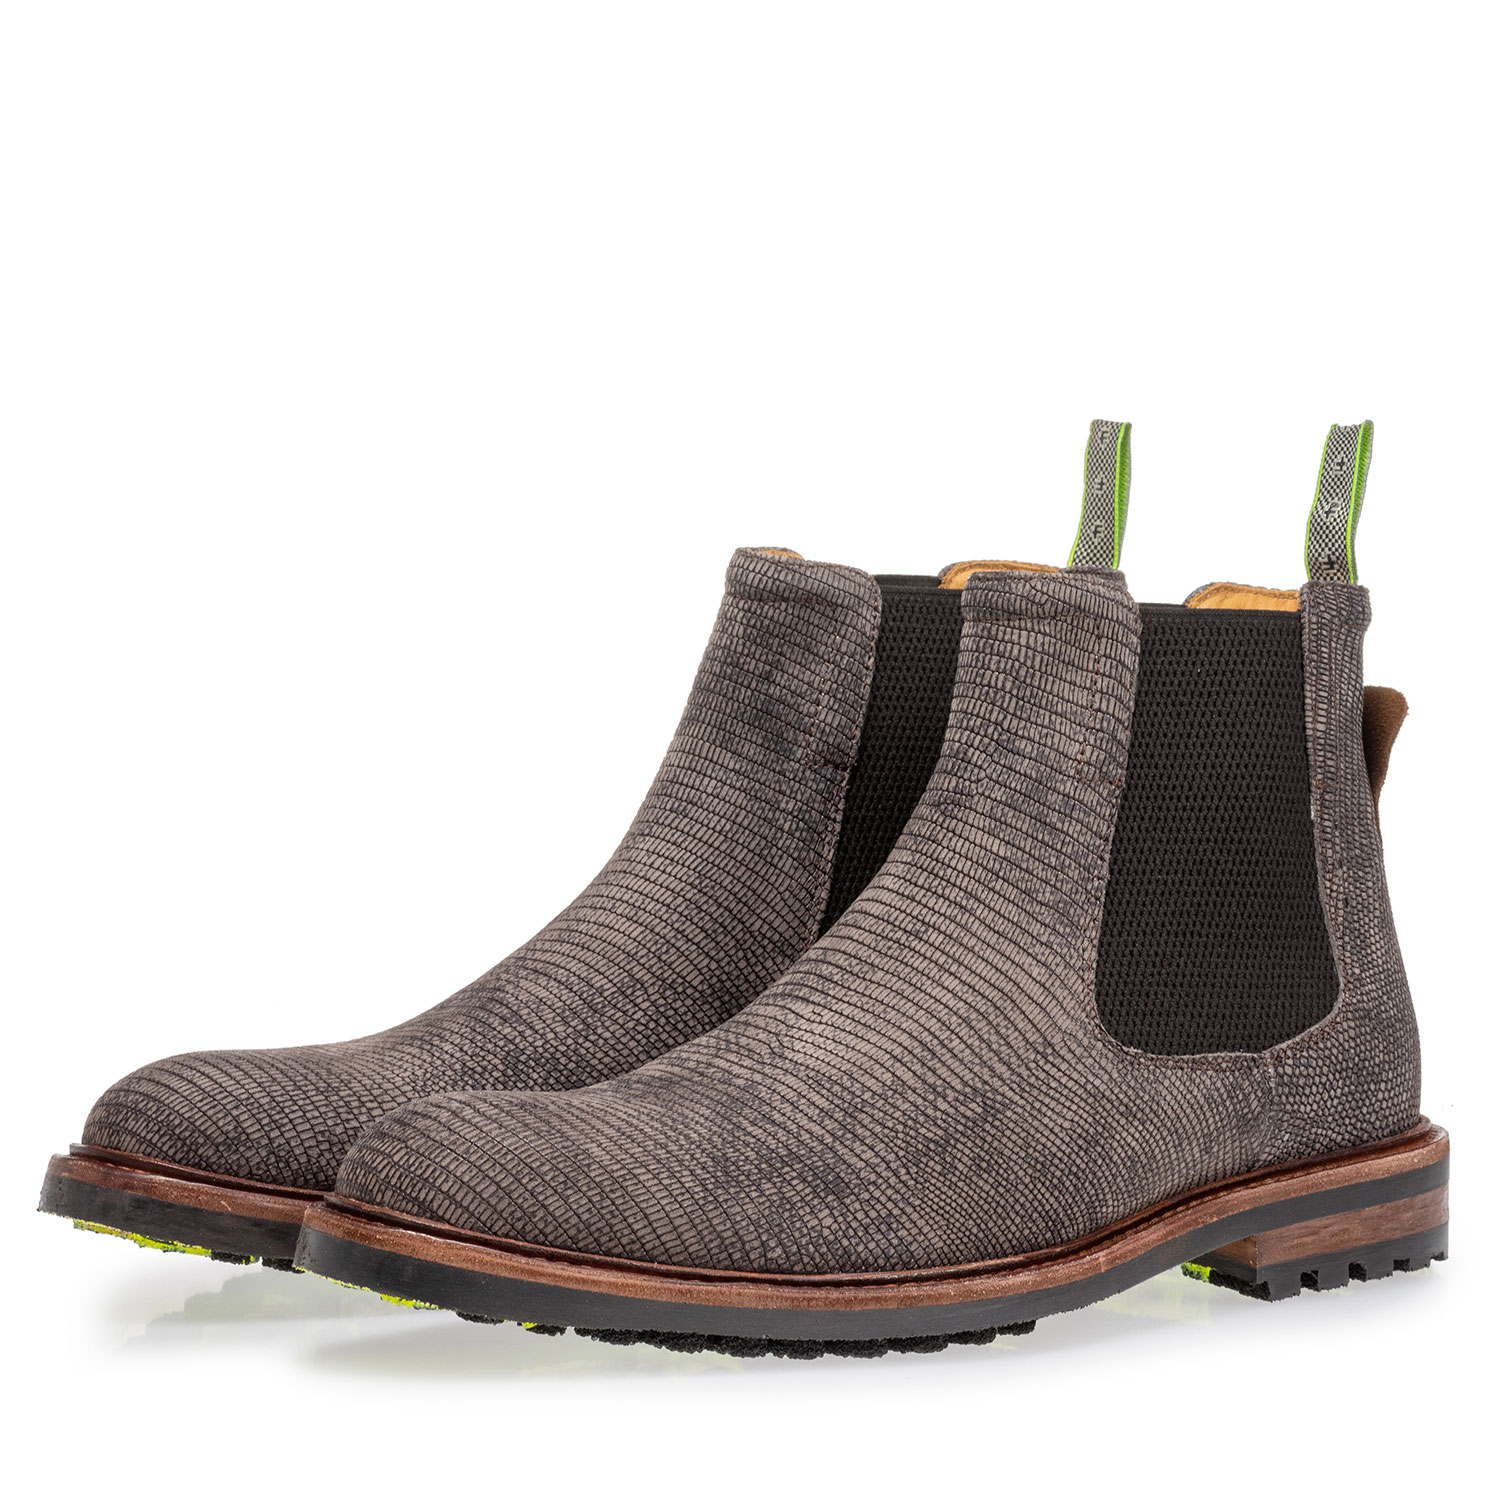 20093/09 - Chelsea boot with lizard print grey